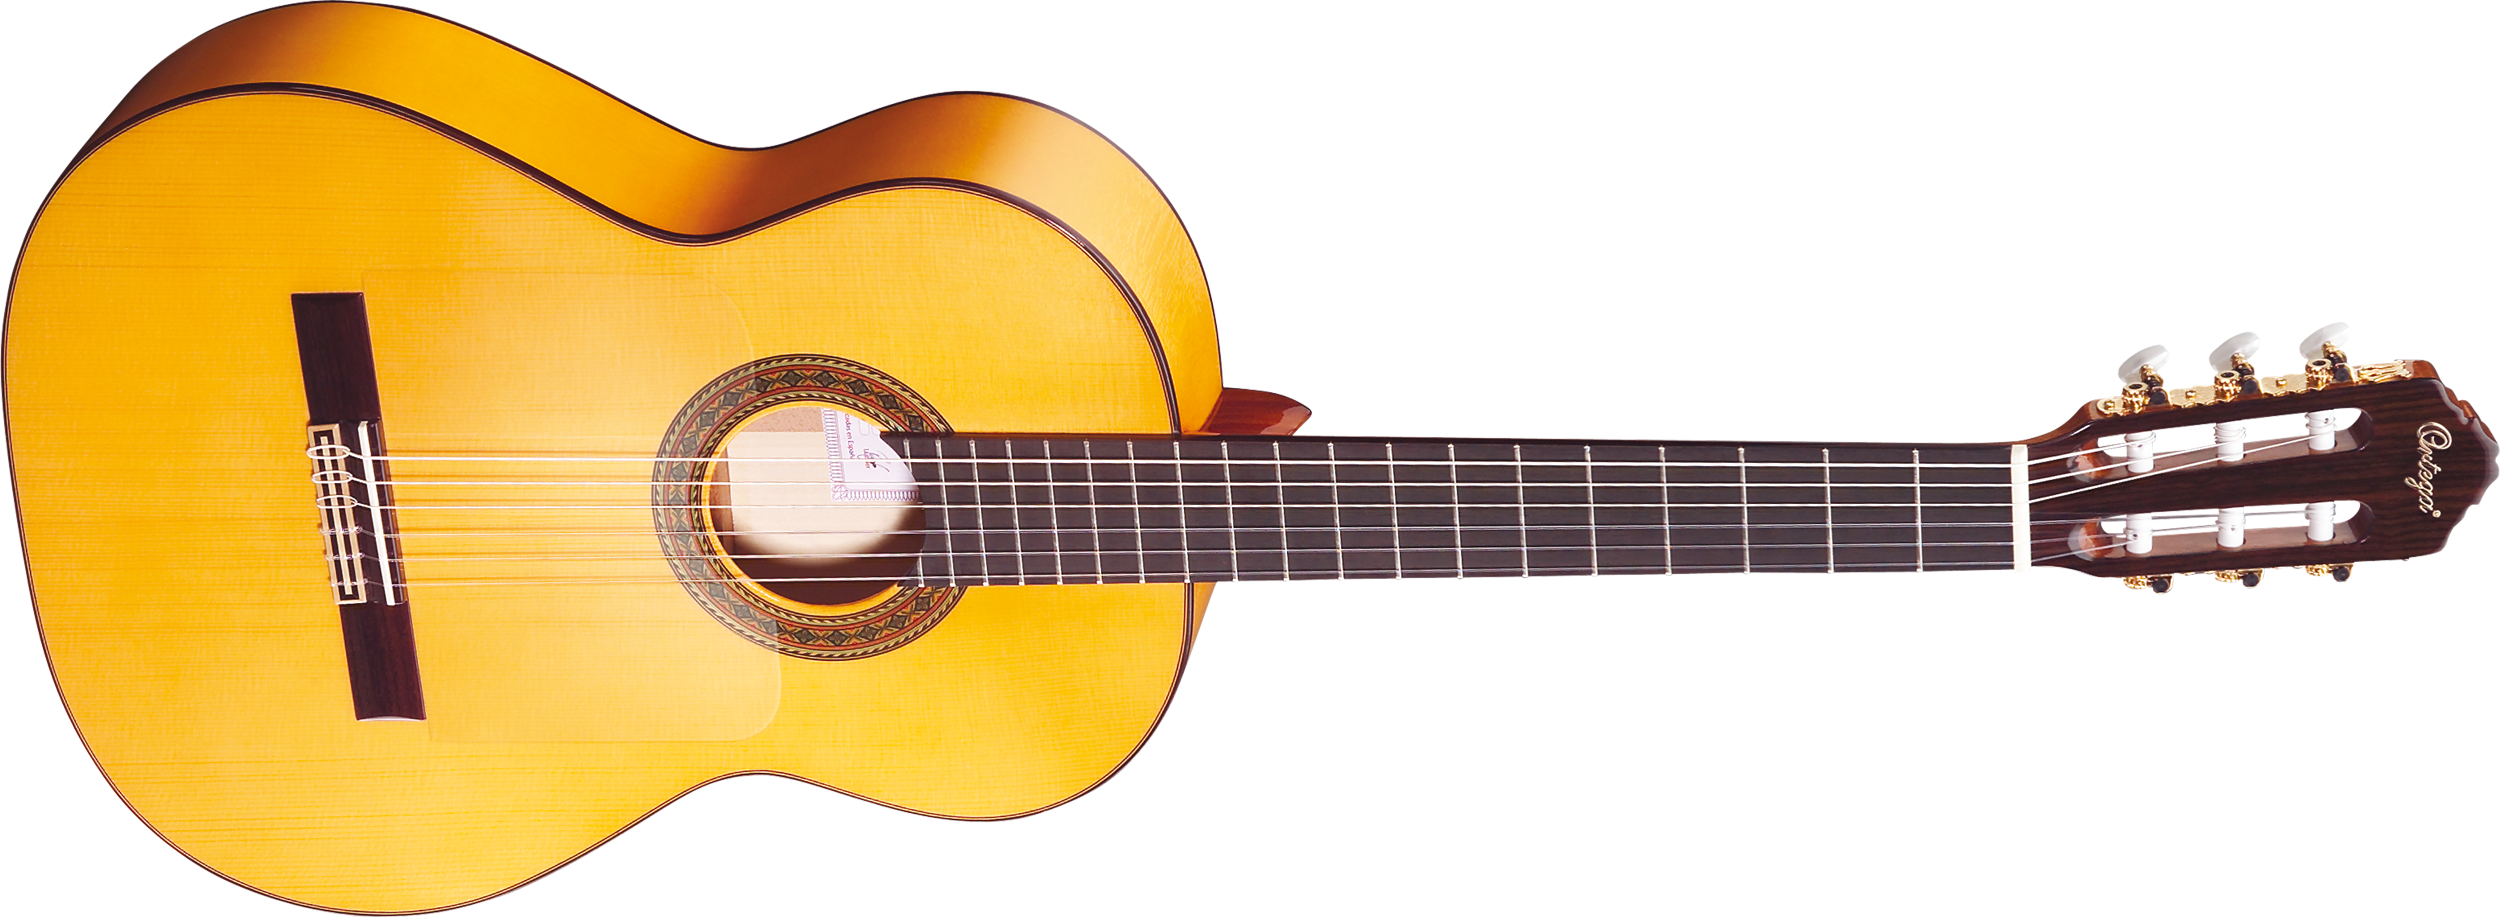 2500x917 Guitar Clipart Blue Object